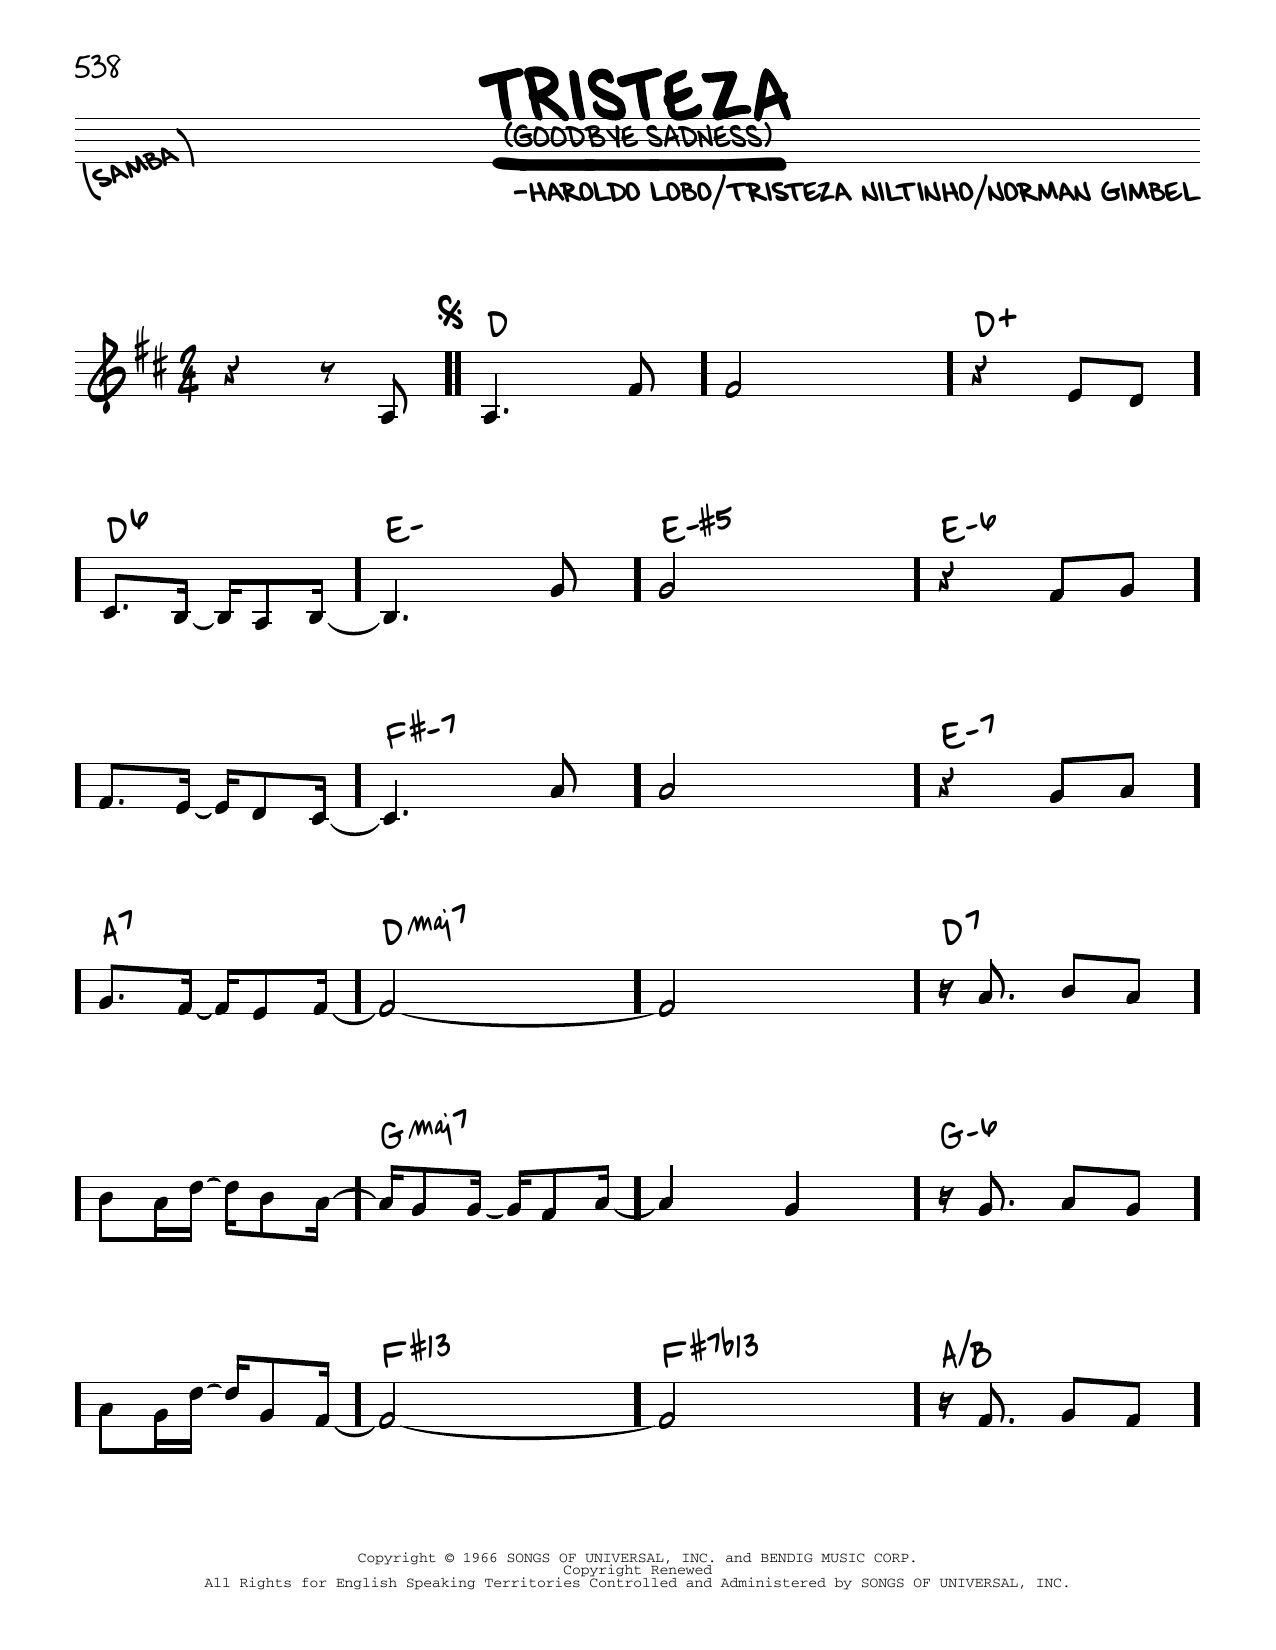 Astrud Gilberto Goodbye Sadness sheet music notes and chords. Download Printable PDF.